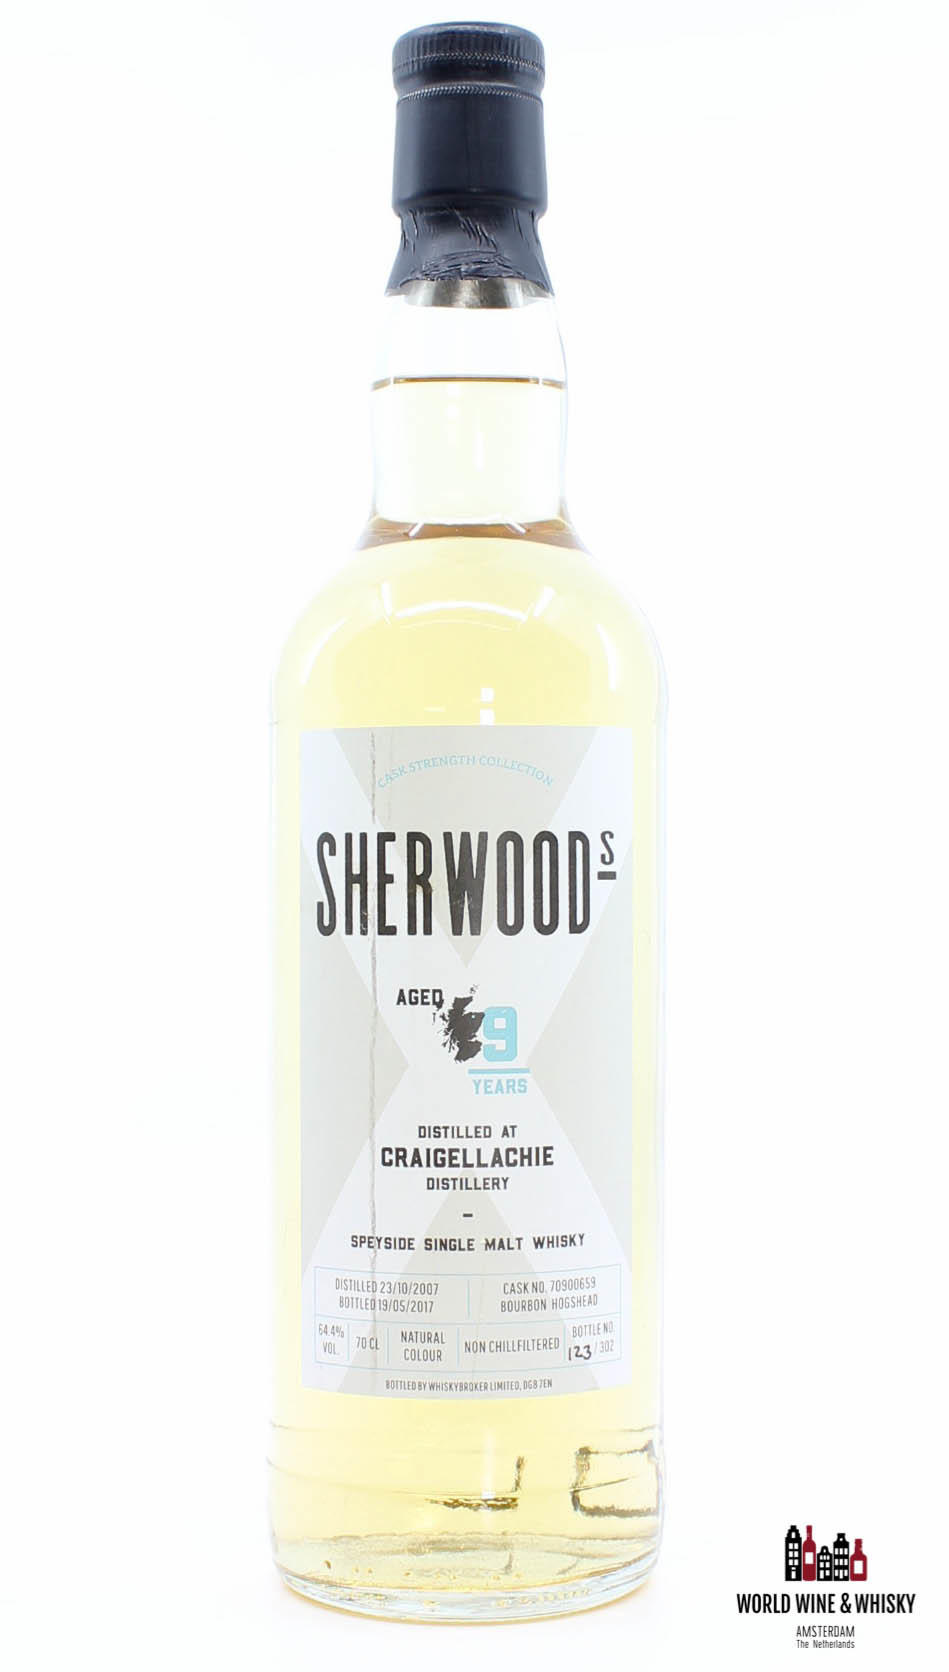 Craigellachie Craigellachie 9 Years Old 2007 2017 Cask Strength Collection - Cask 70900659 - Sherwoods 64.4%